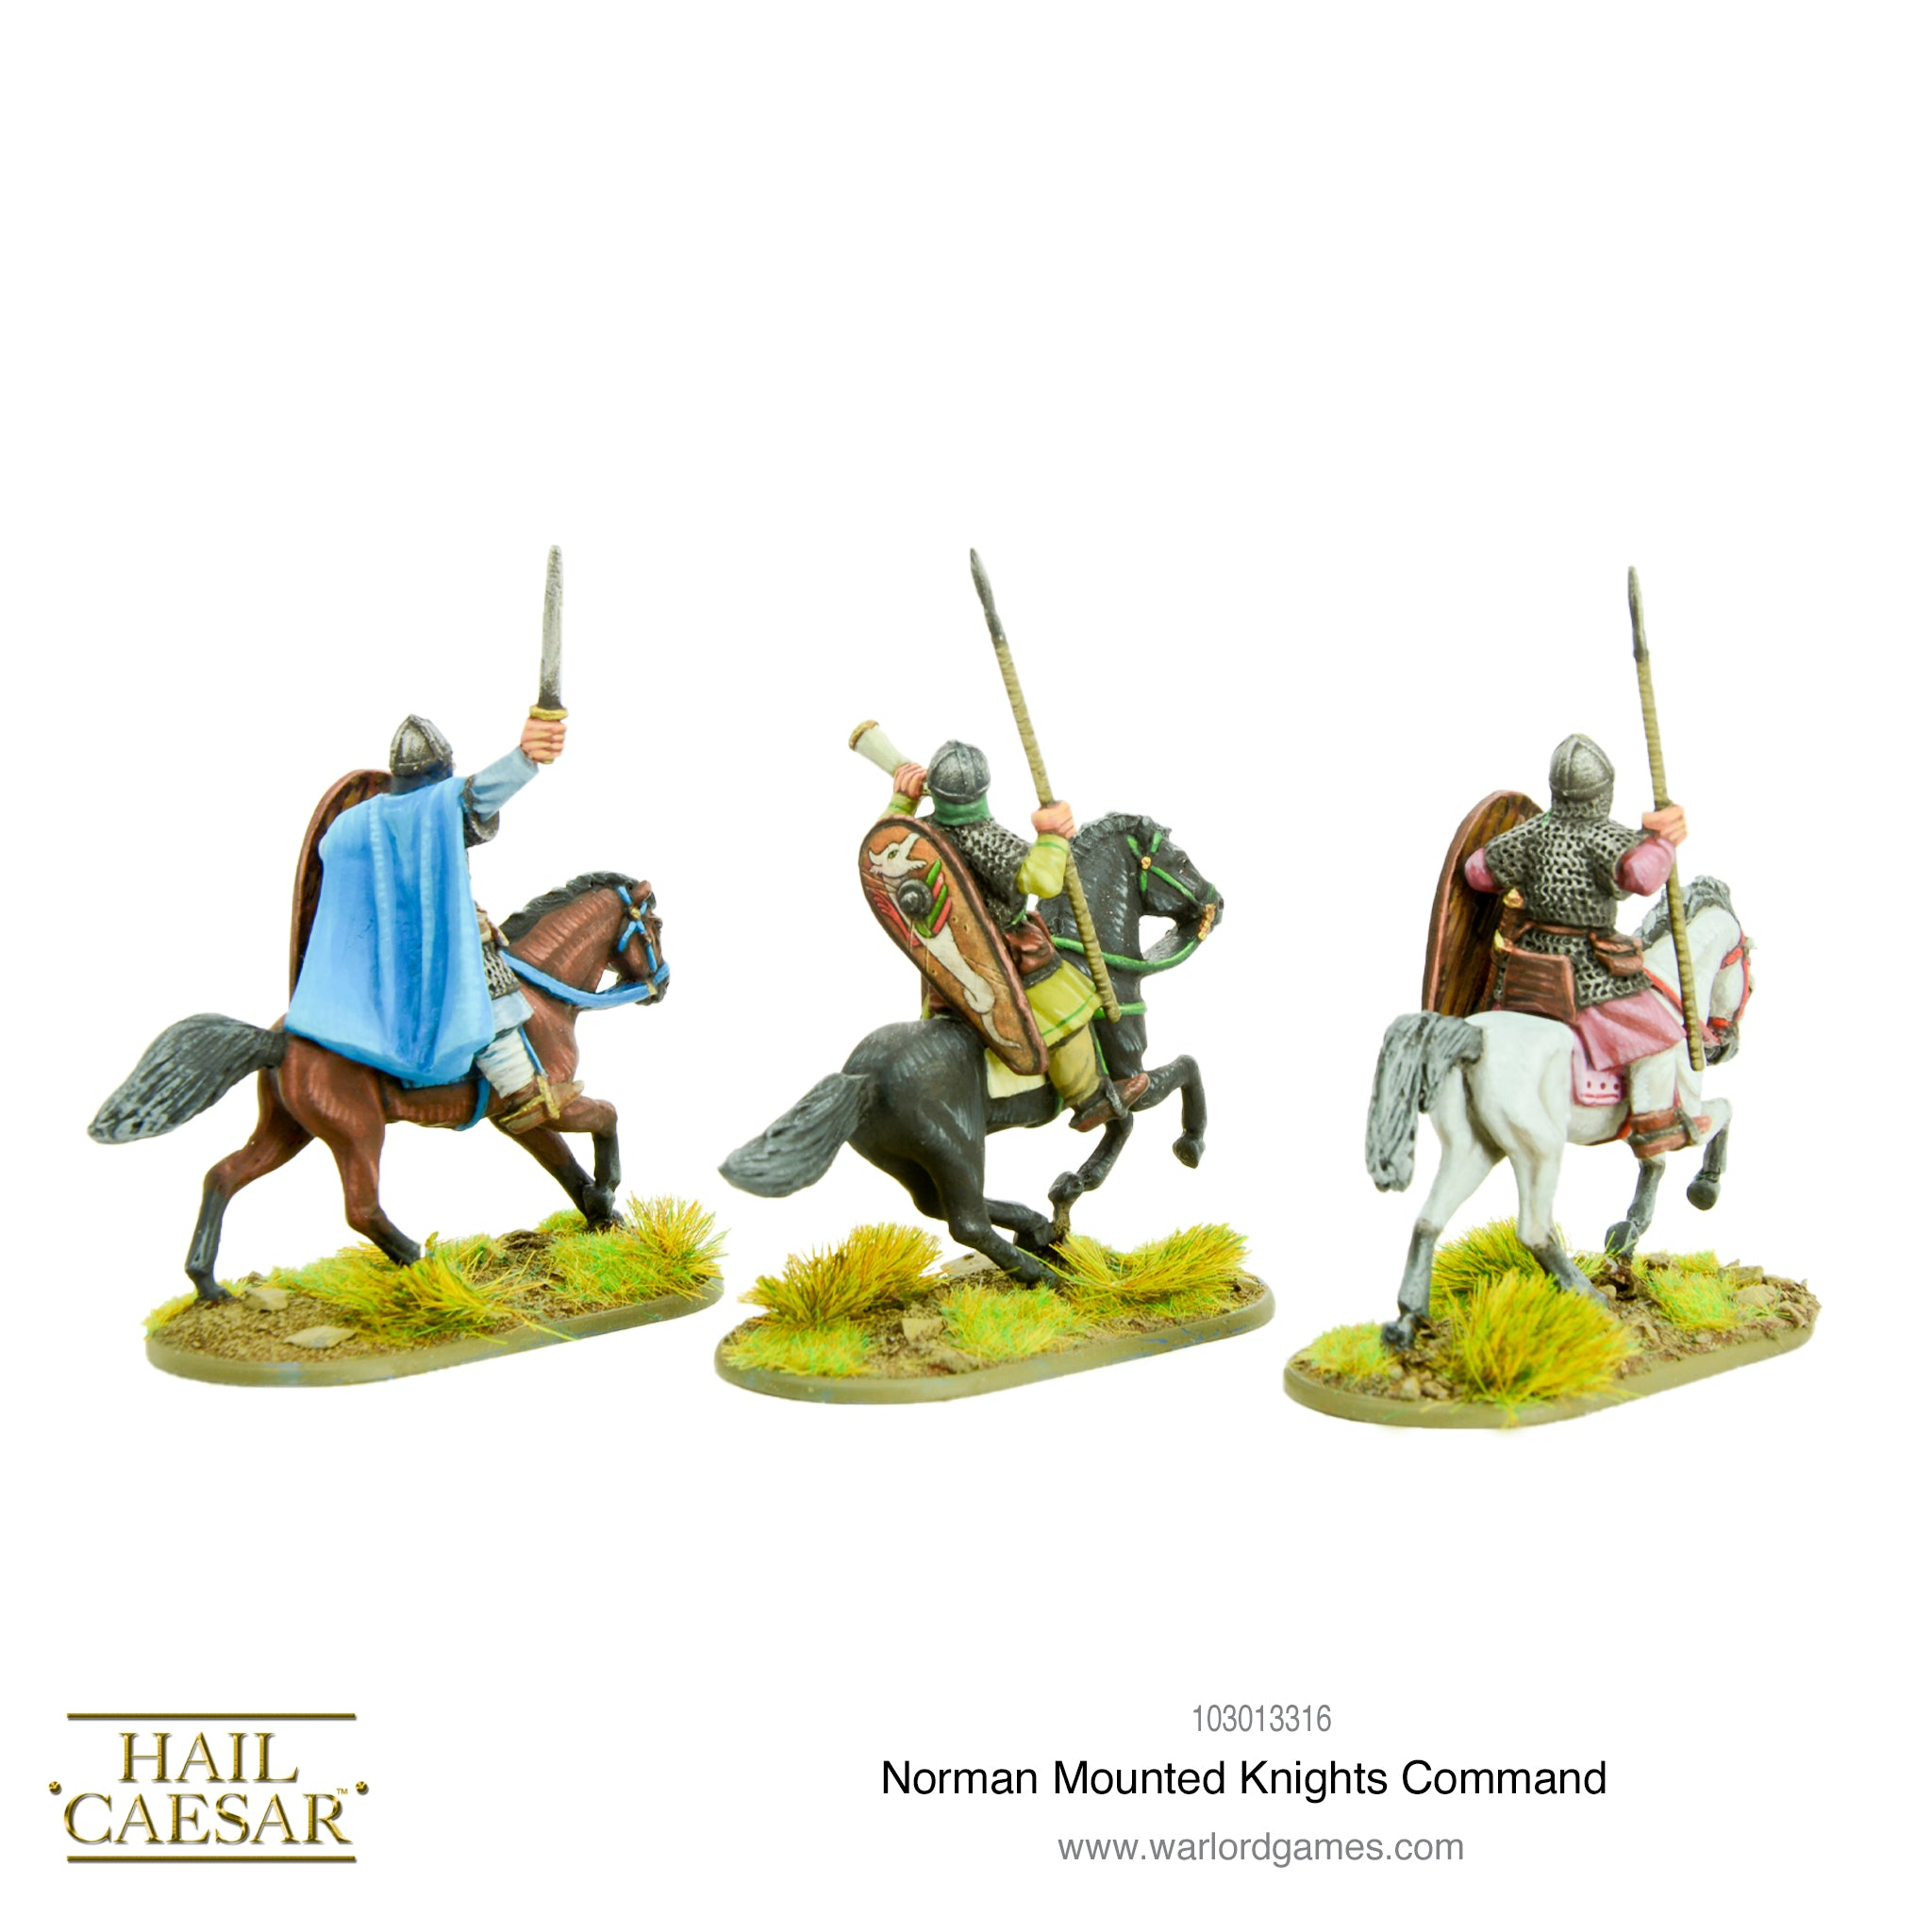 Norman Mounted Knights Command